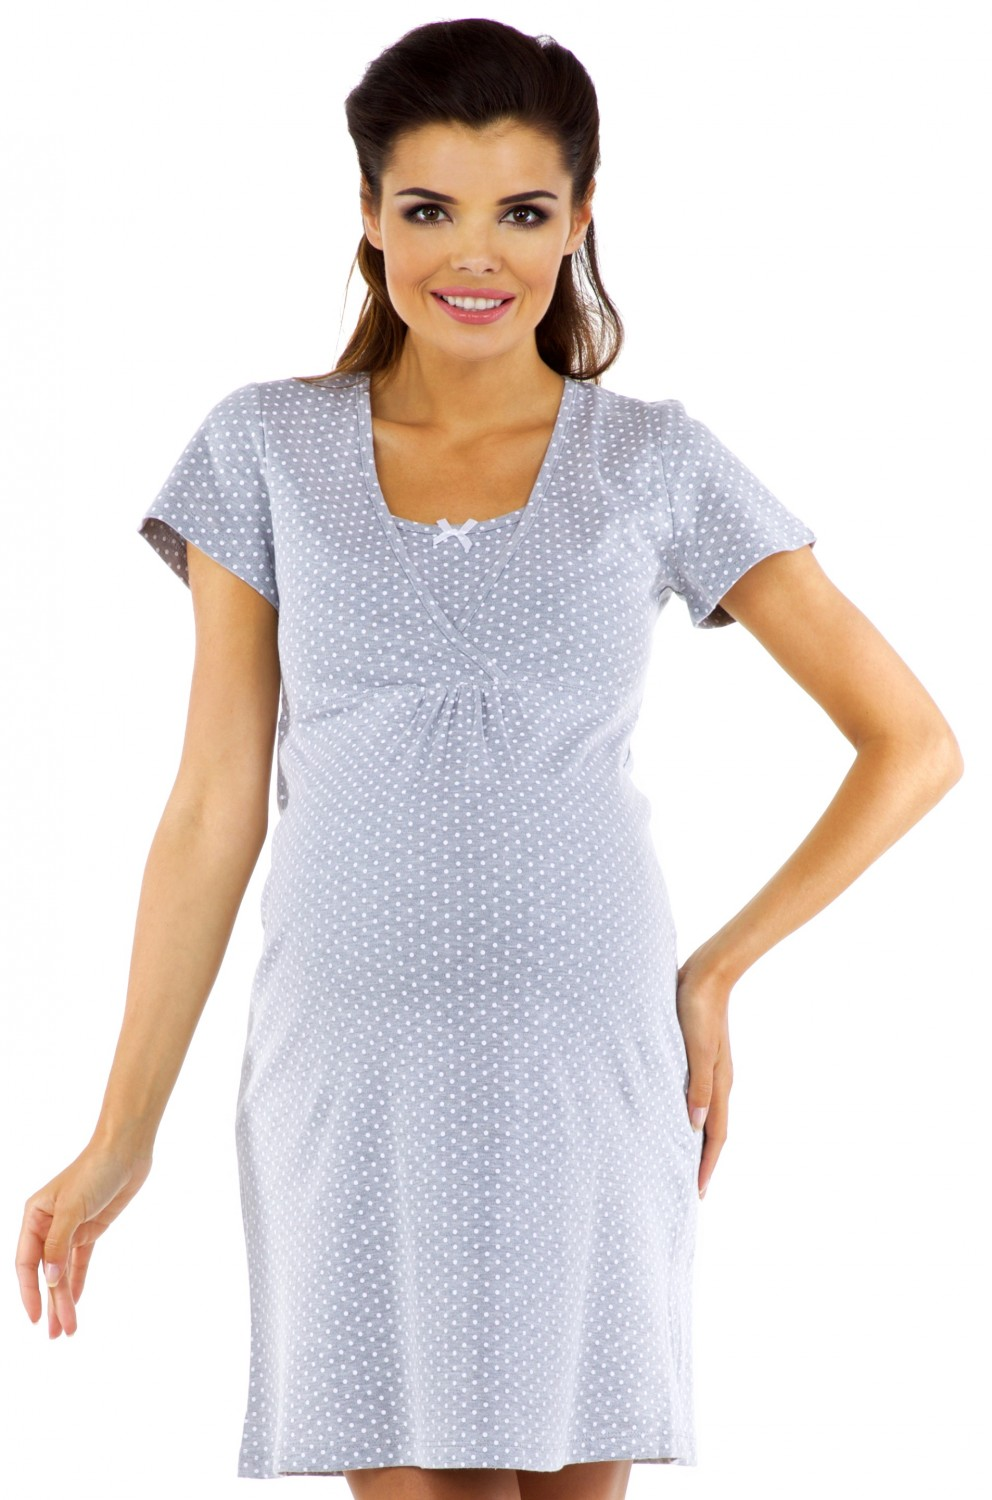 Shop Labor Gowns, Maternity & Nursing Sleepwear, Baby Gowns,Baby Shower Gifts & Hospital Labor Socks Maternity & pregnancy clothing by Baby Be Mine Maternity. Free shipping in US orders over $50 - Flat Rate Shipping $ in US Free shipping in US orders over $50 - .